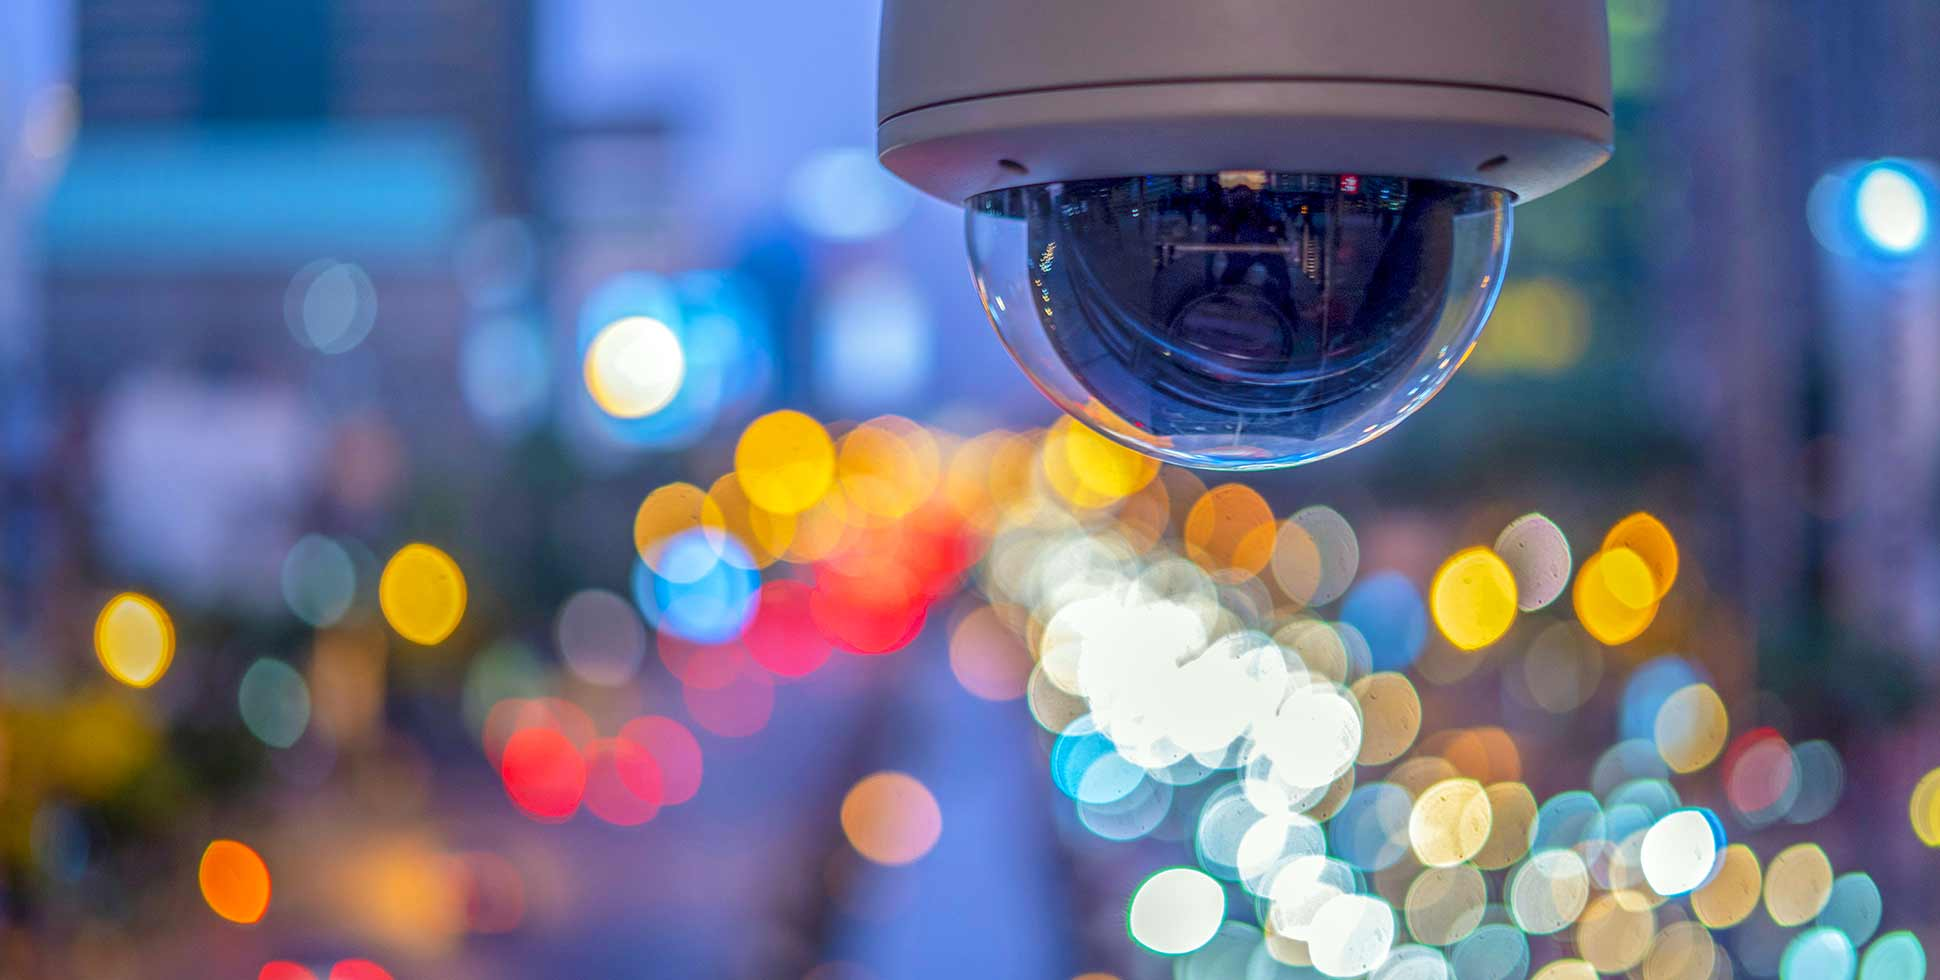 Arm Enables Secure Computer Vision for Smart Cameras